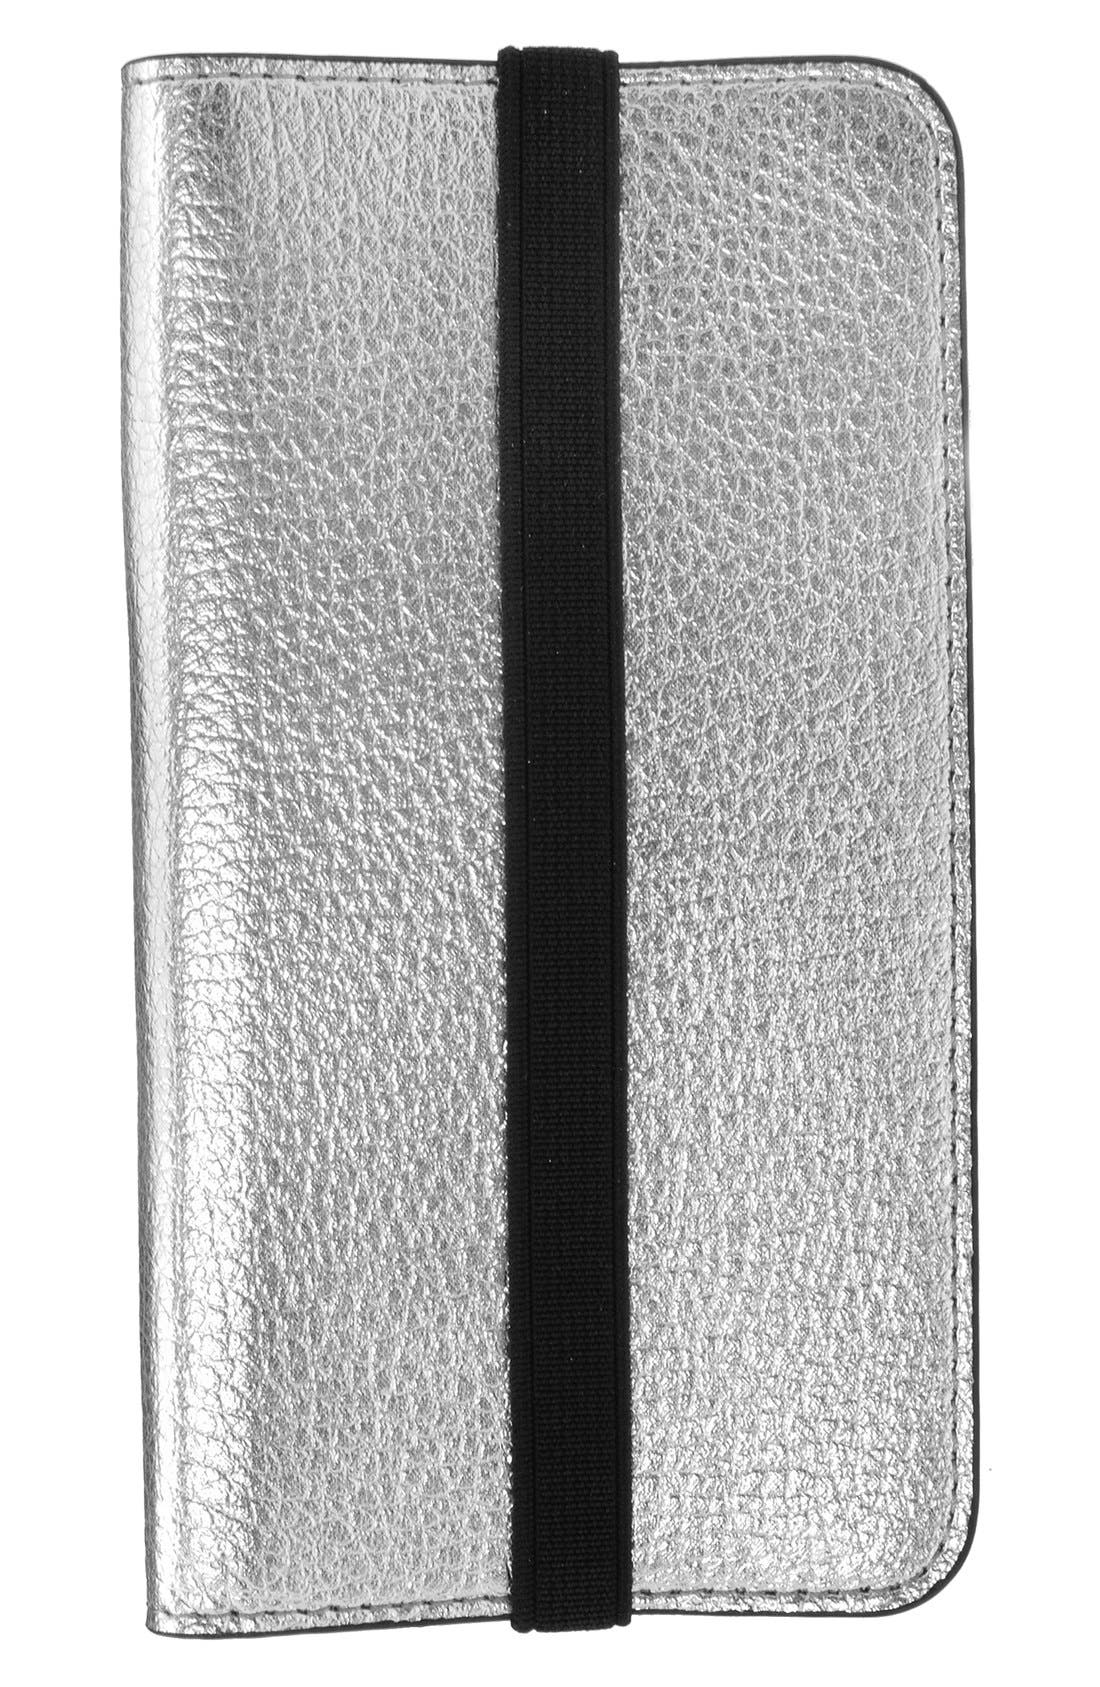 iPhone 6/6s Metallic Leather Wallet Case,                             Main thumbnail 1, color,                             040